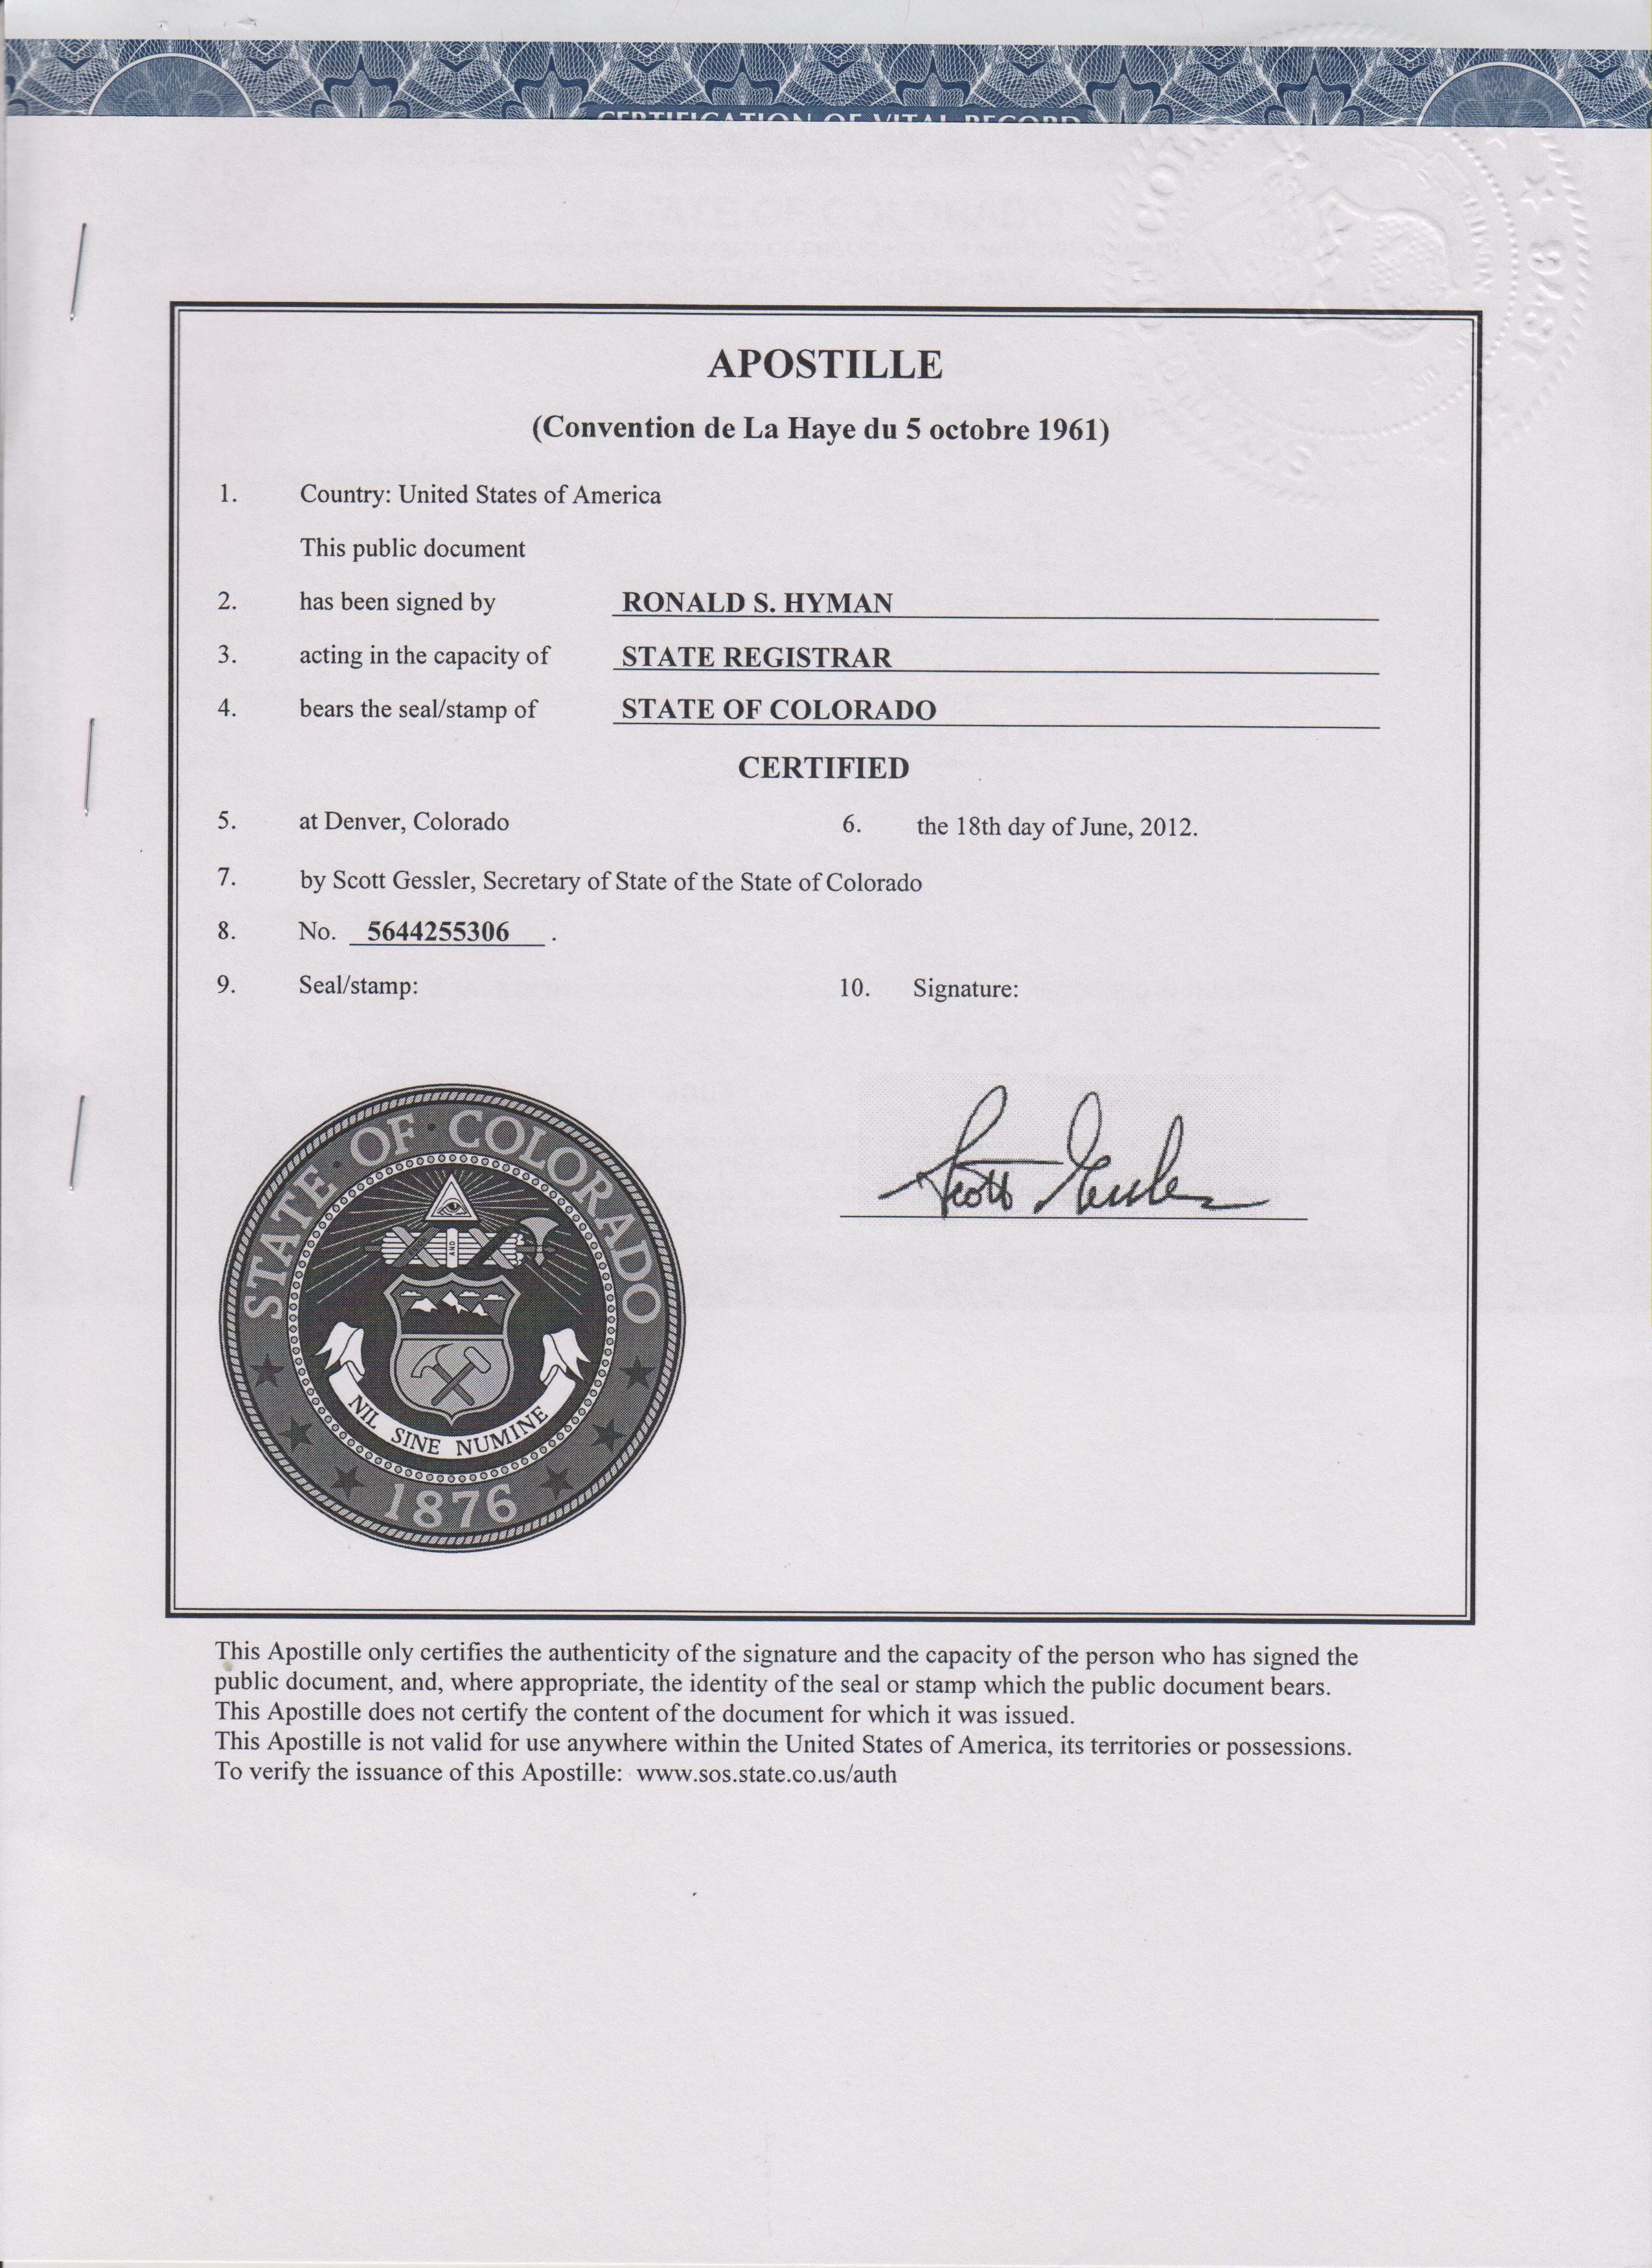 Louisiana apostille we provide fast and reliable apostille louisiana apostille we provide fast and reliable apostille services from the state of louisiana we can also obtain many kinds of documents from l xflitez Gallery